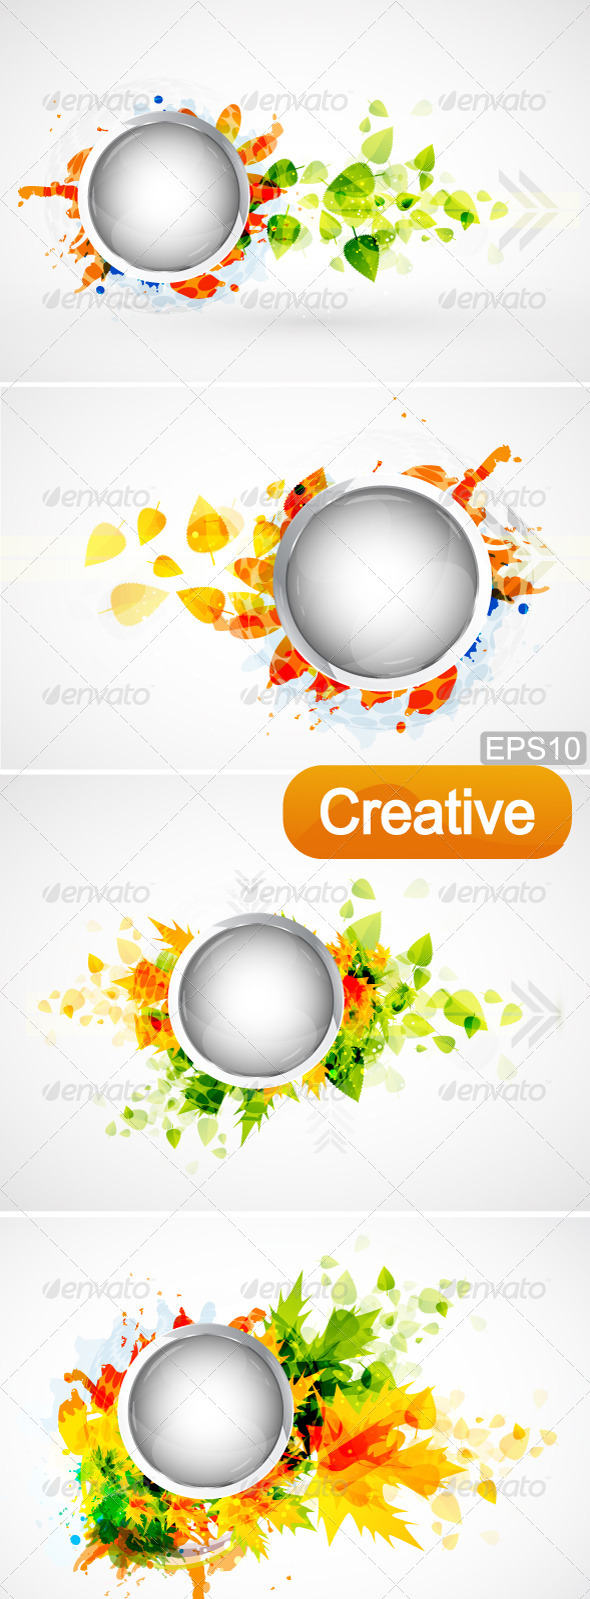 Creative Nature Design Elements - Decorative Symbols Decorative